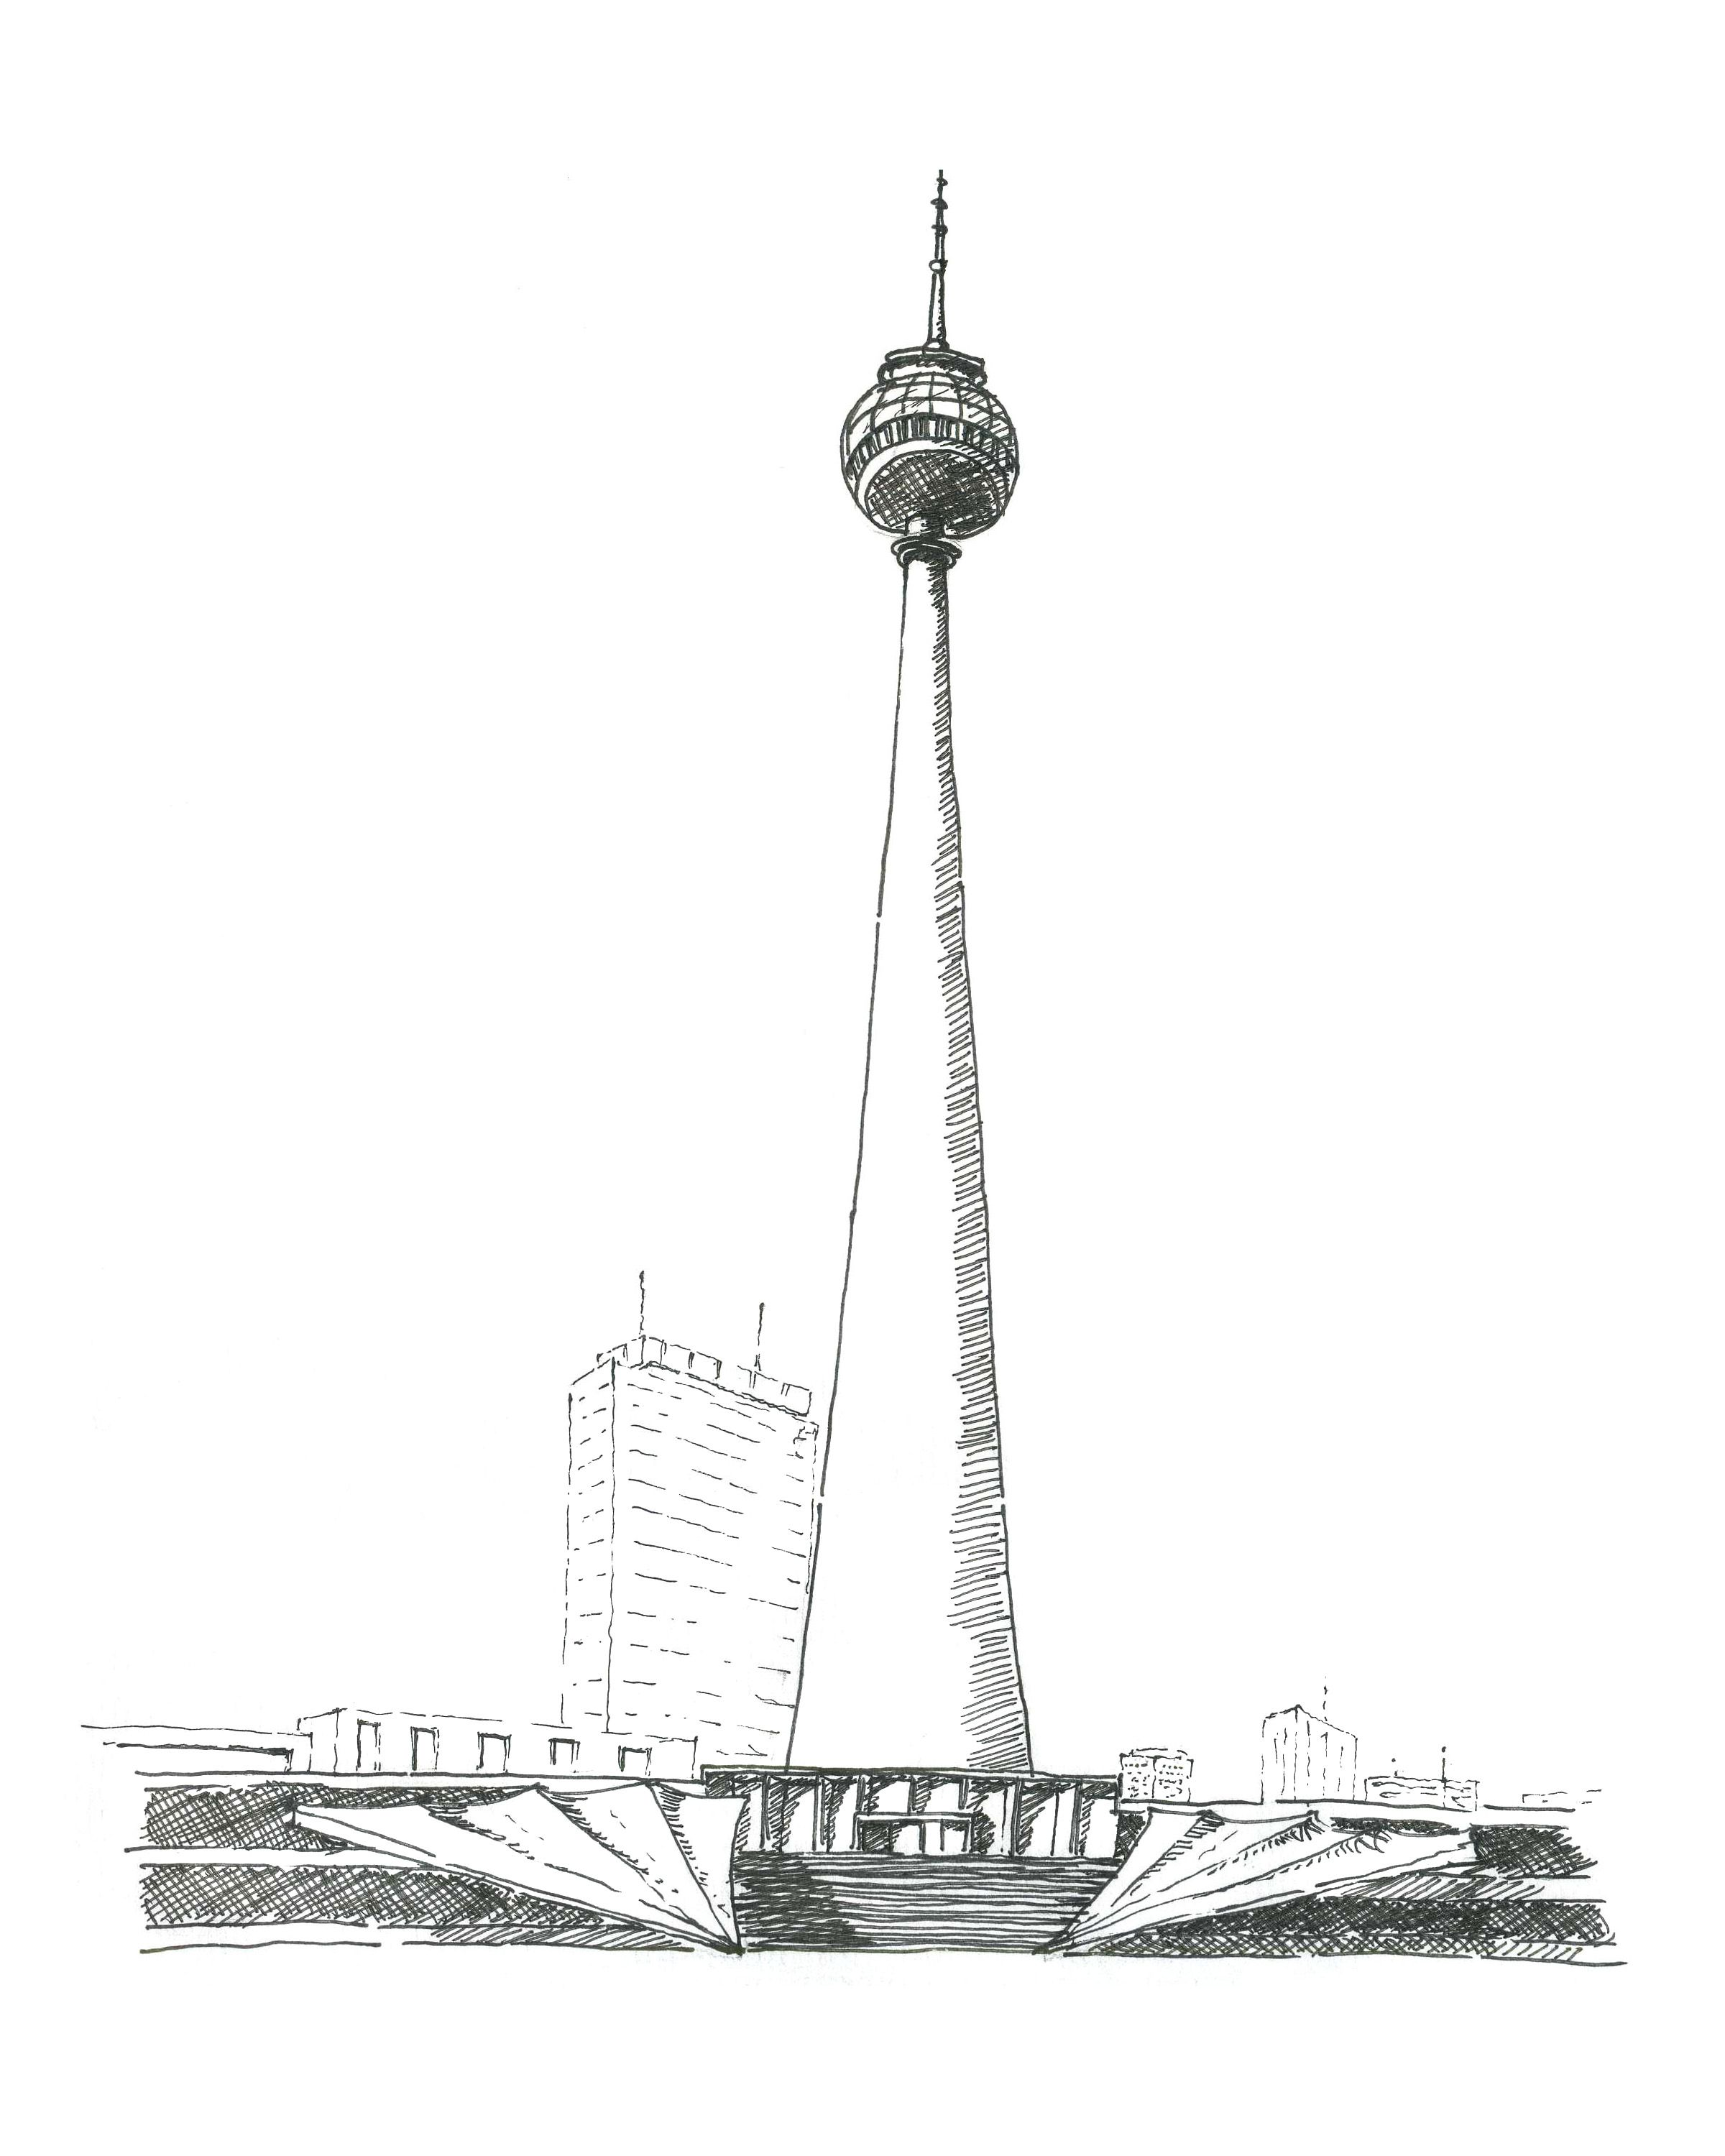 Hand Drawn Perspective Of Berliner Fernsehturm Berlin Germany Spring 2012 Architecture Studio Clemson University P Fernsehturm Berlin Fernsehturm Turm